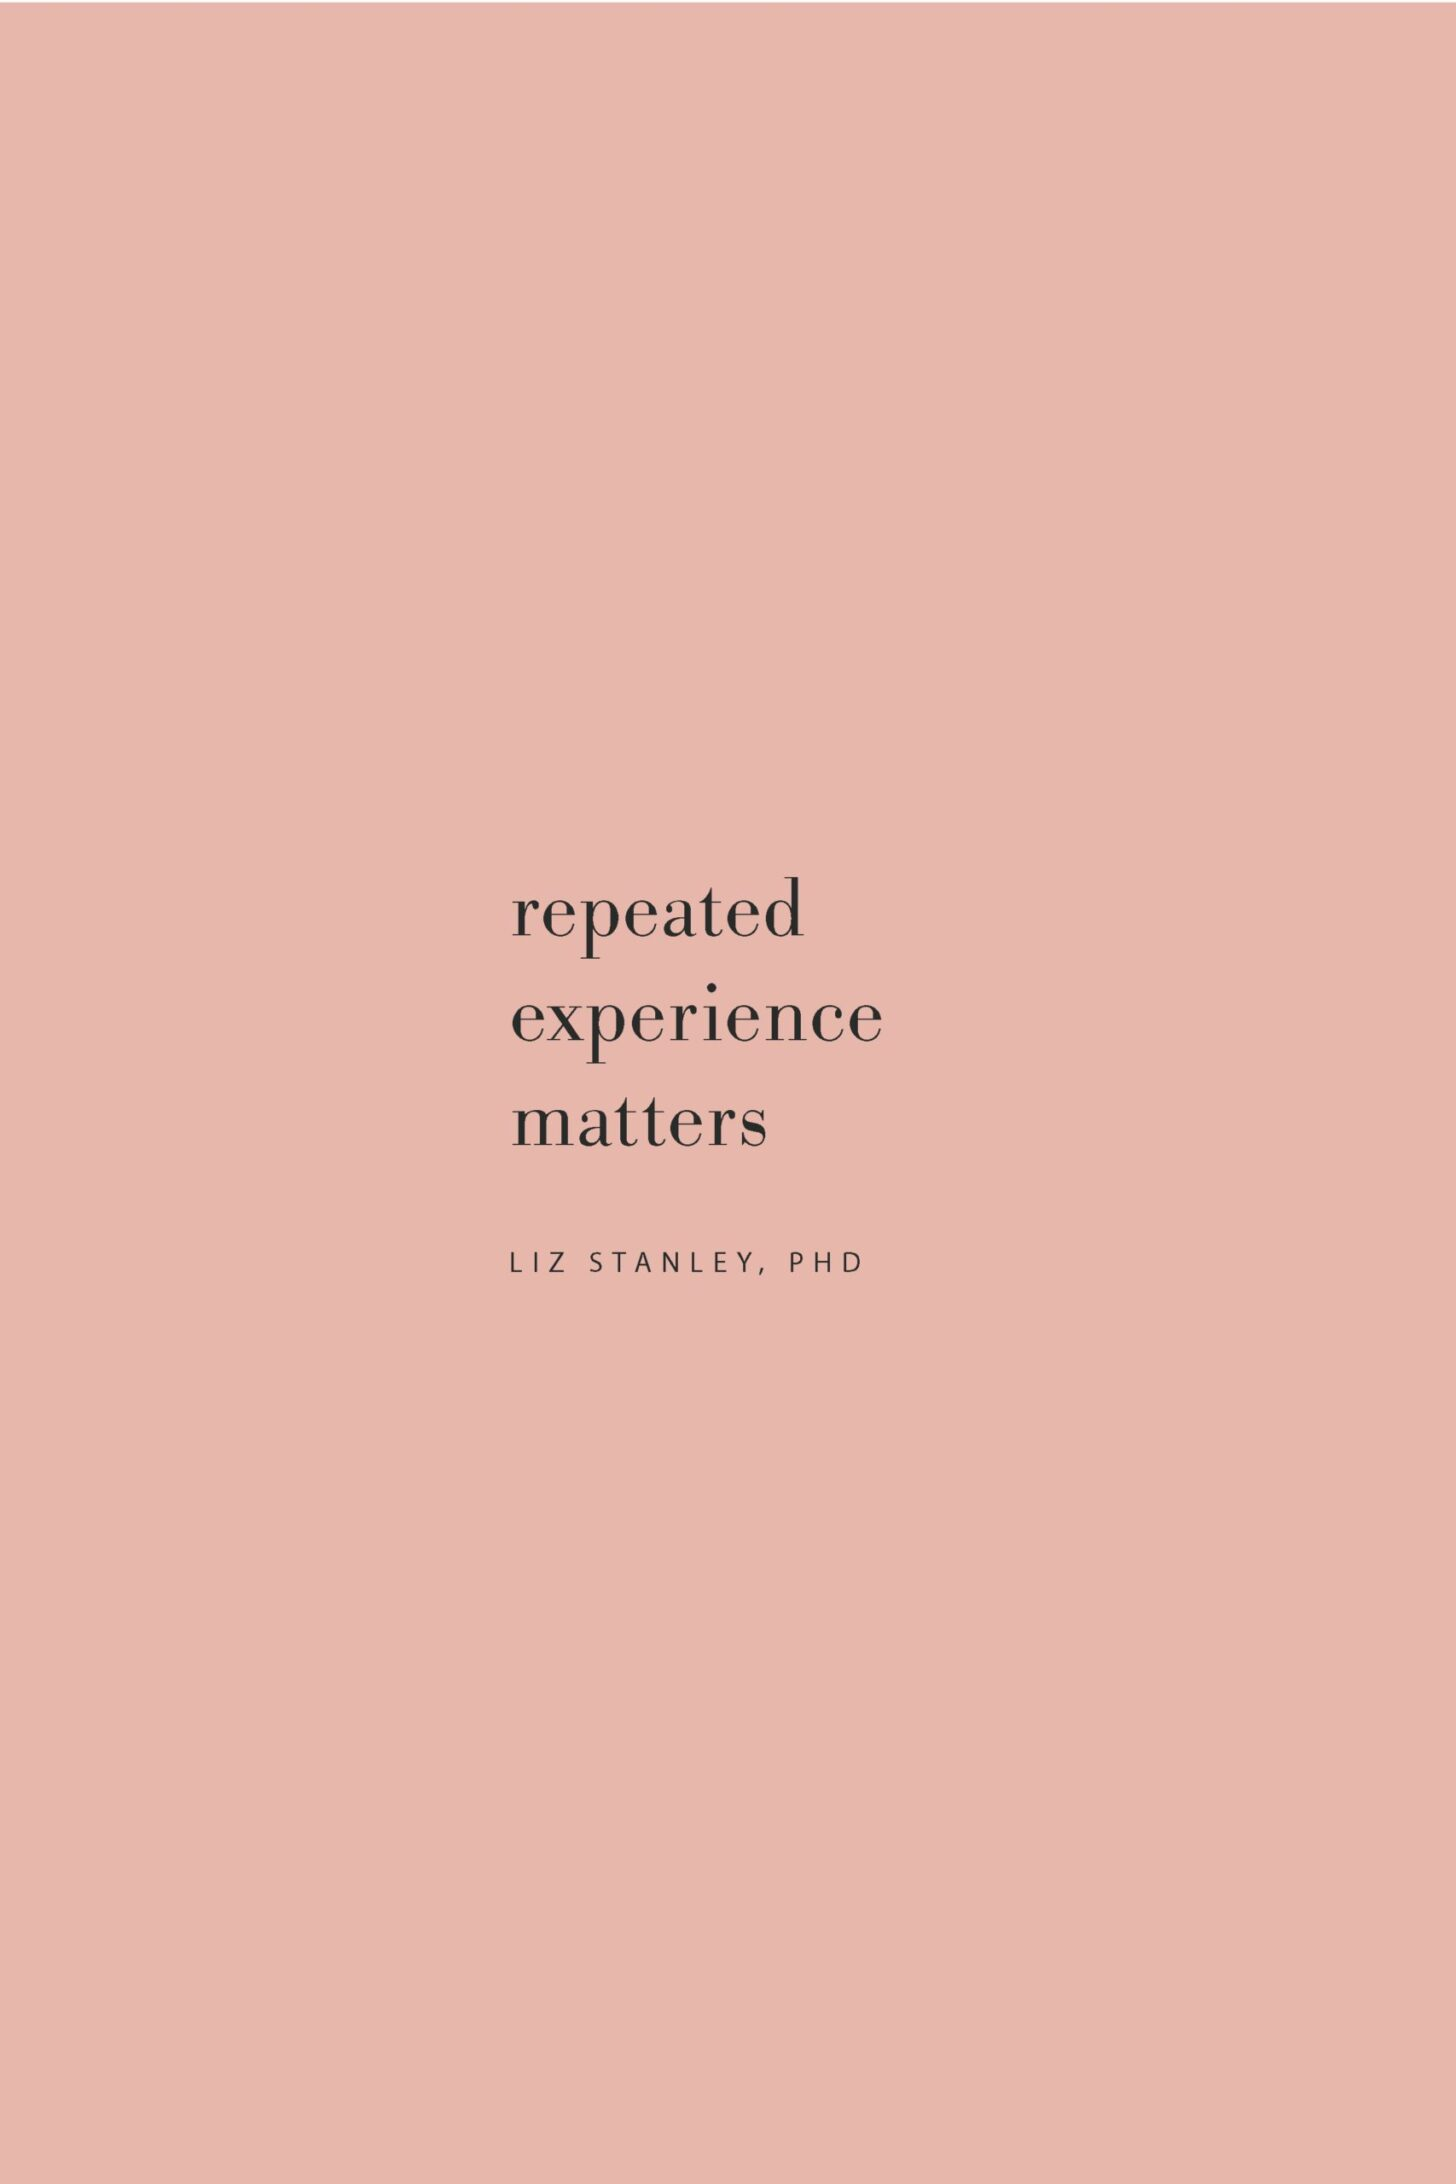 Quote on repeated experiences and practice by Dr. Liz Stanley on the Feel Good Effect Podcast. #realfoodwholelife #feelgoodeffectpodcast #stressquote #wellnessquote #inspirationalquote #positivityquote #motivationalquote #resiliencequote #joyfulquote #happinessquote #learningquote